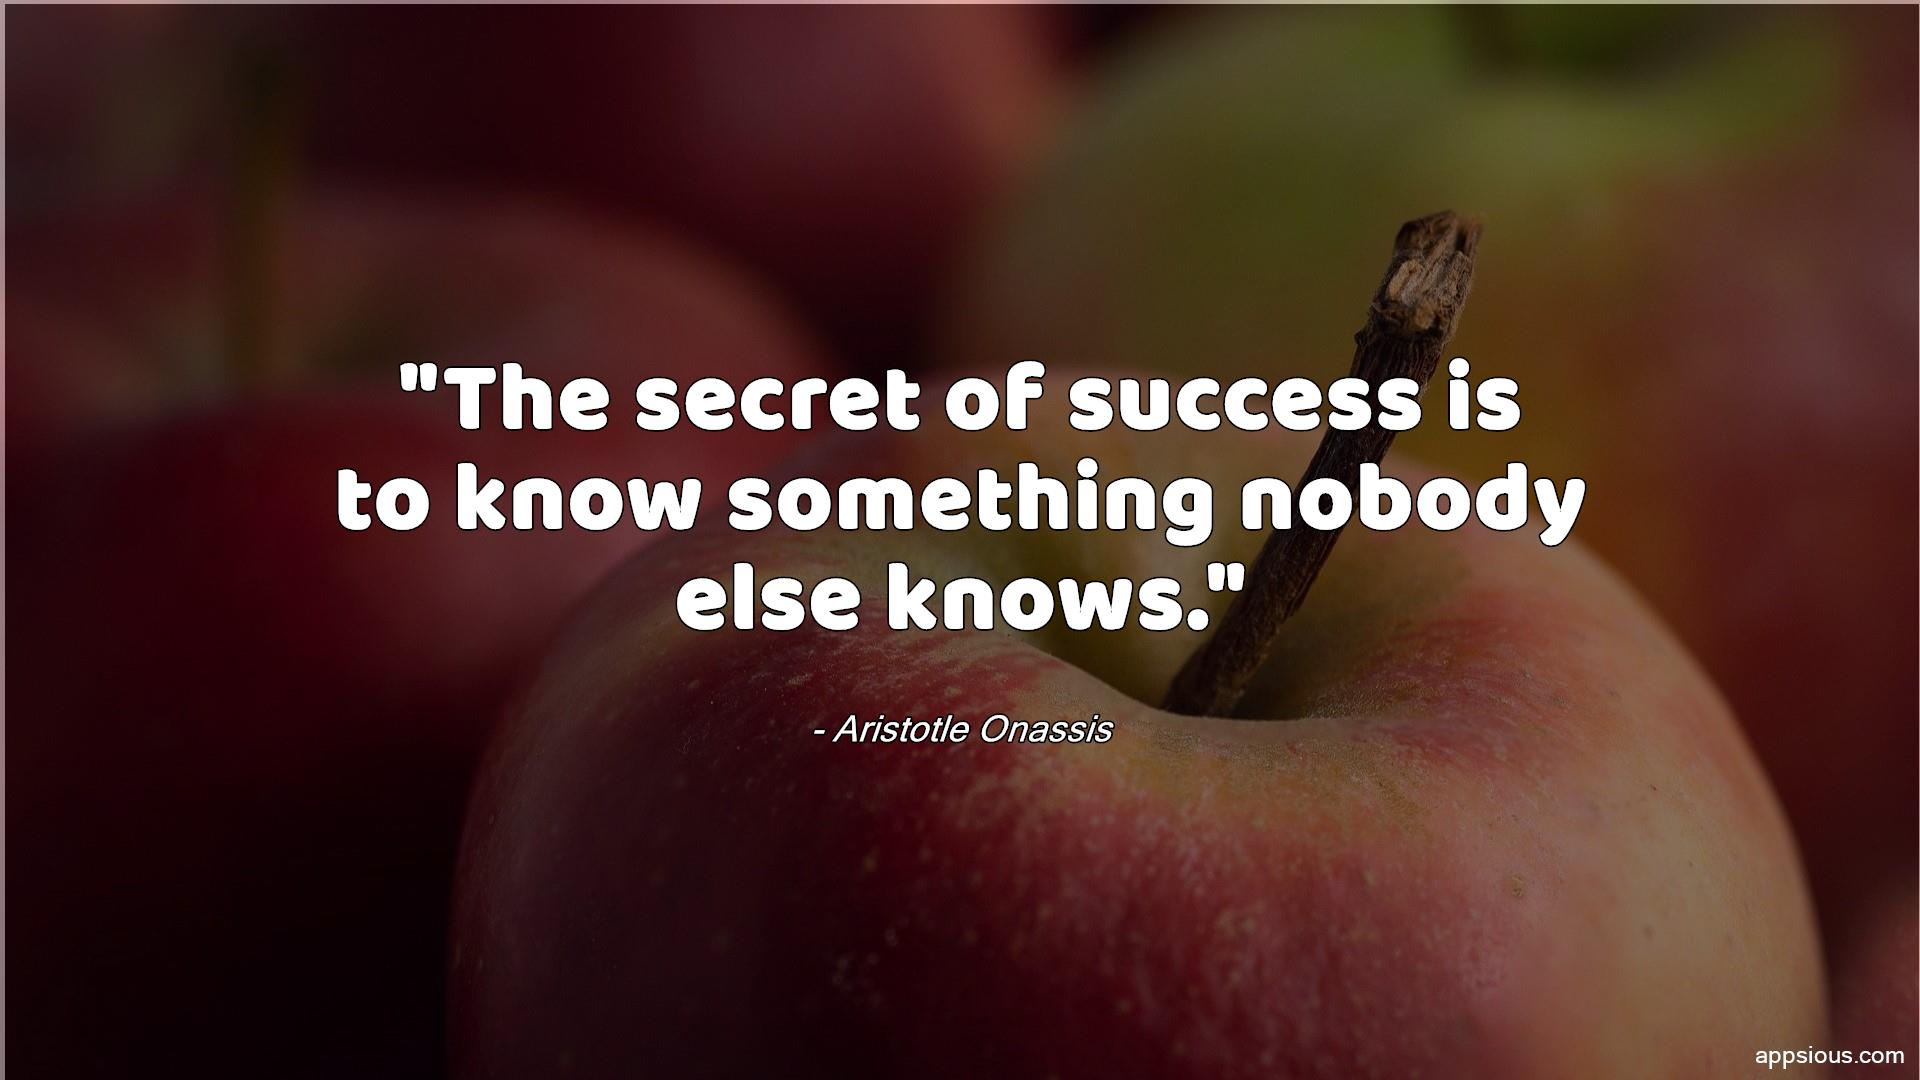 The secret of success is to know something nobody else knows.